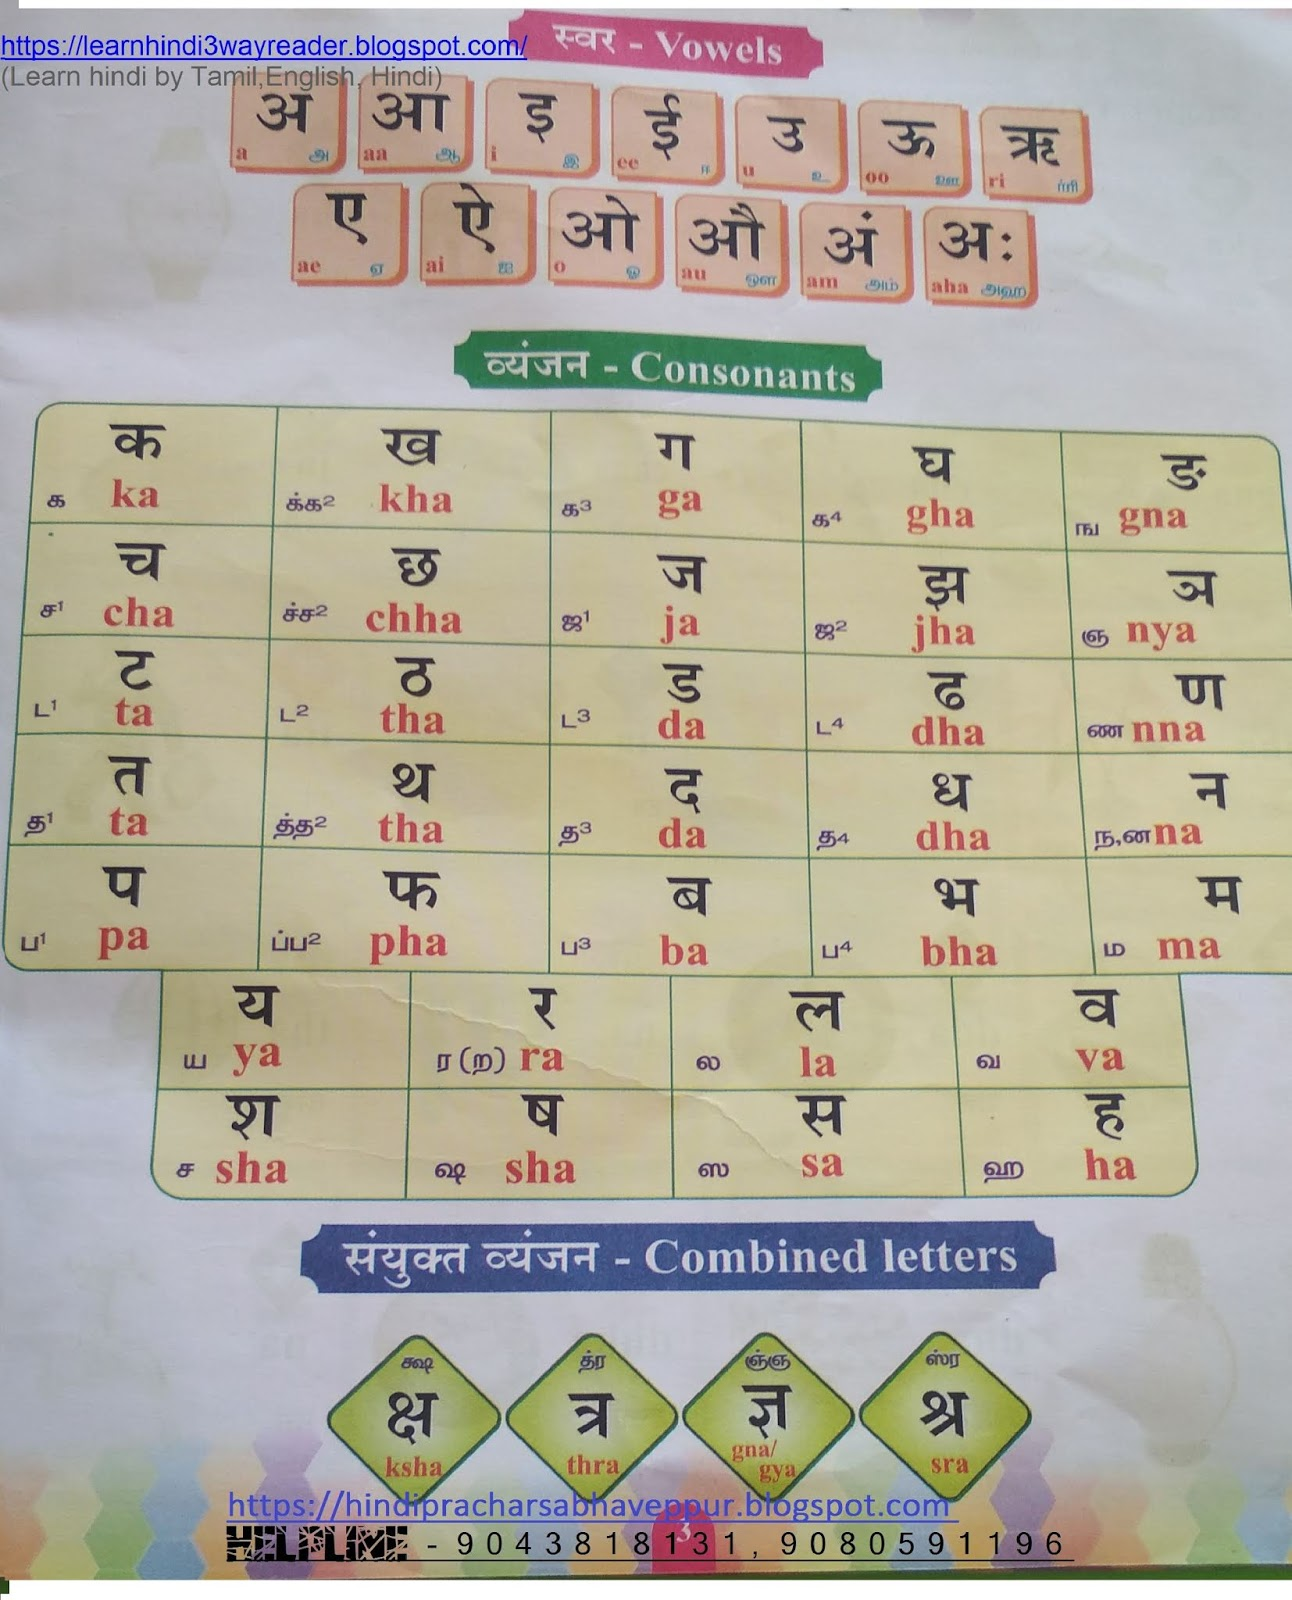 Basic Hindi Vowels With Picture Hind English And Tamil